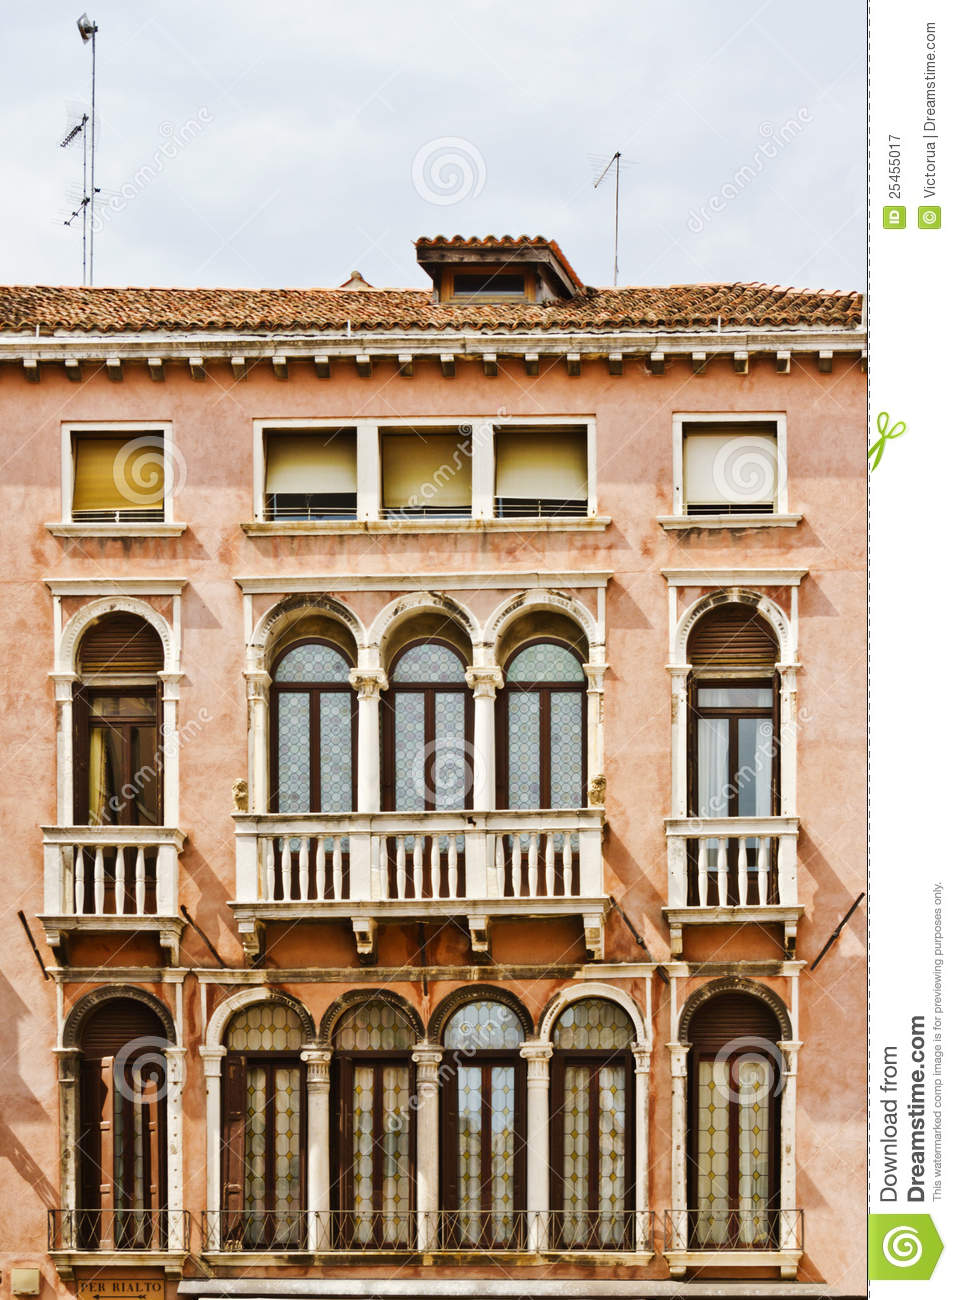 architecture of the venetian balconies venice italy europe